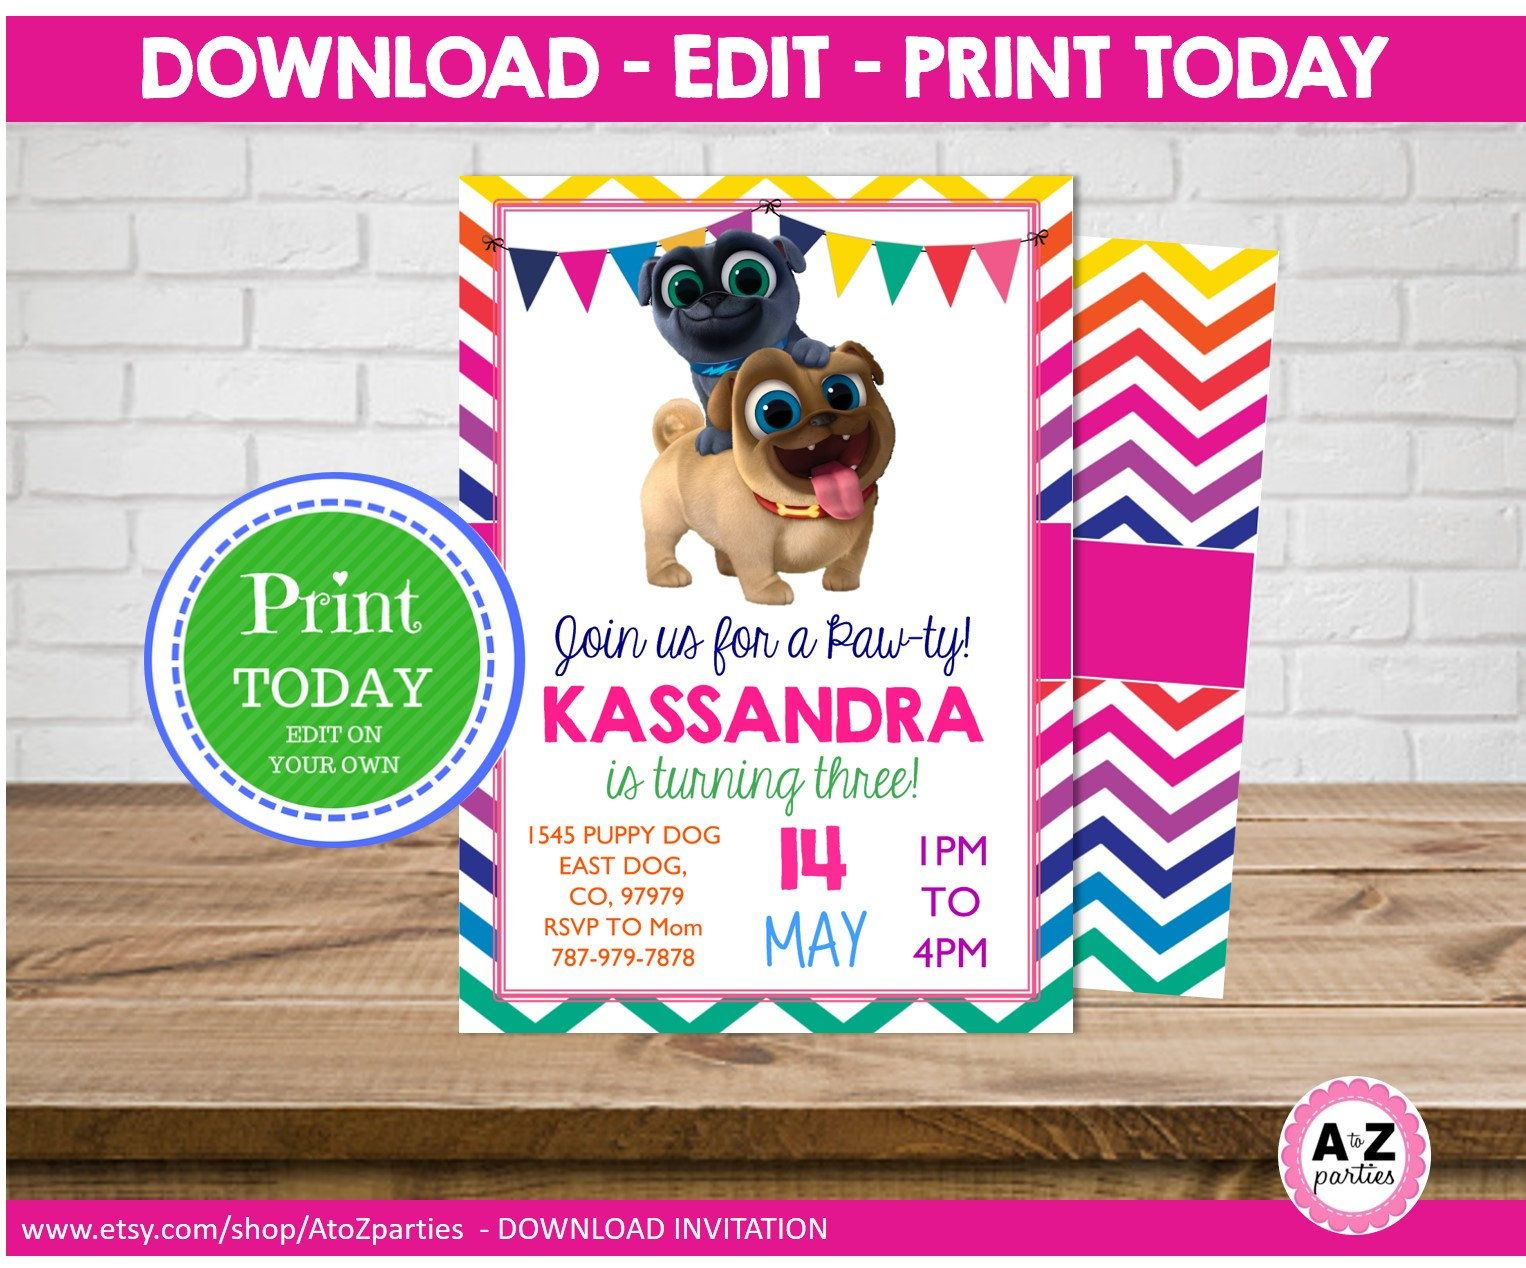 Puppy Dog Pals Invitation Rainbow Colors Download File Edit On Your Own Editable Text 5x7 Print At Home Invitations Lilly Party Dogs And Puppies